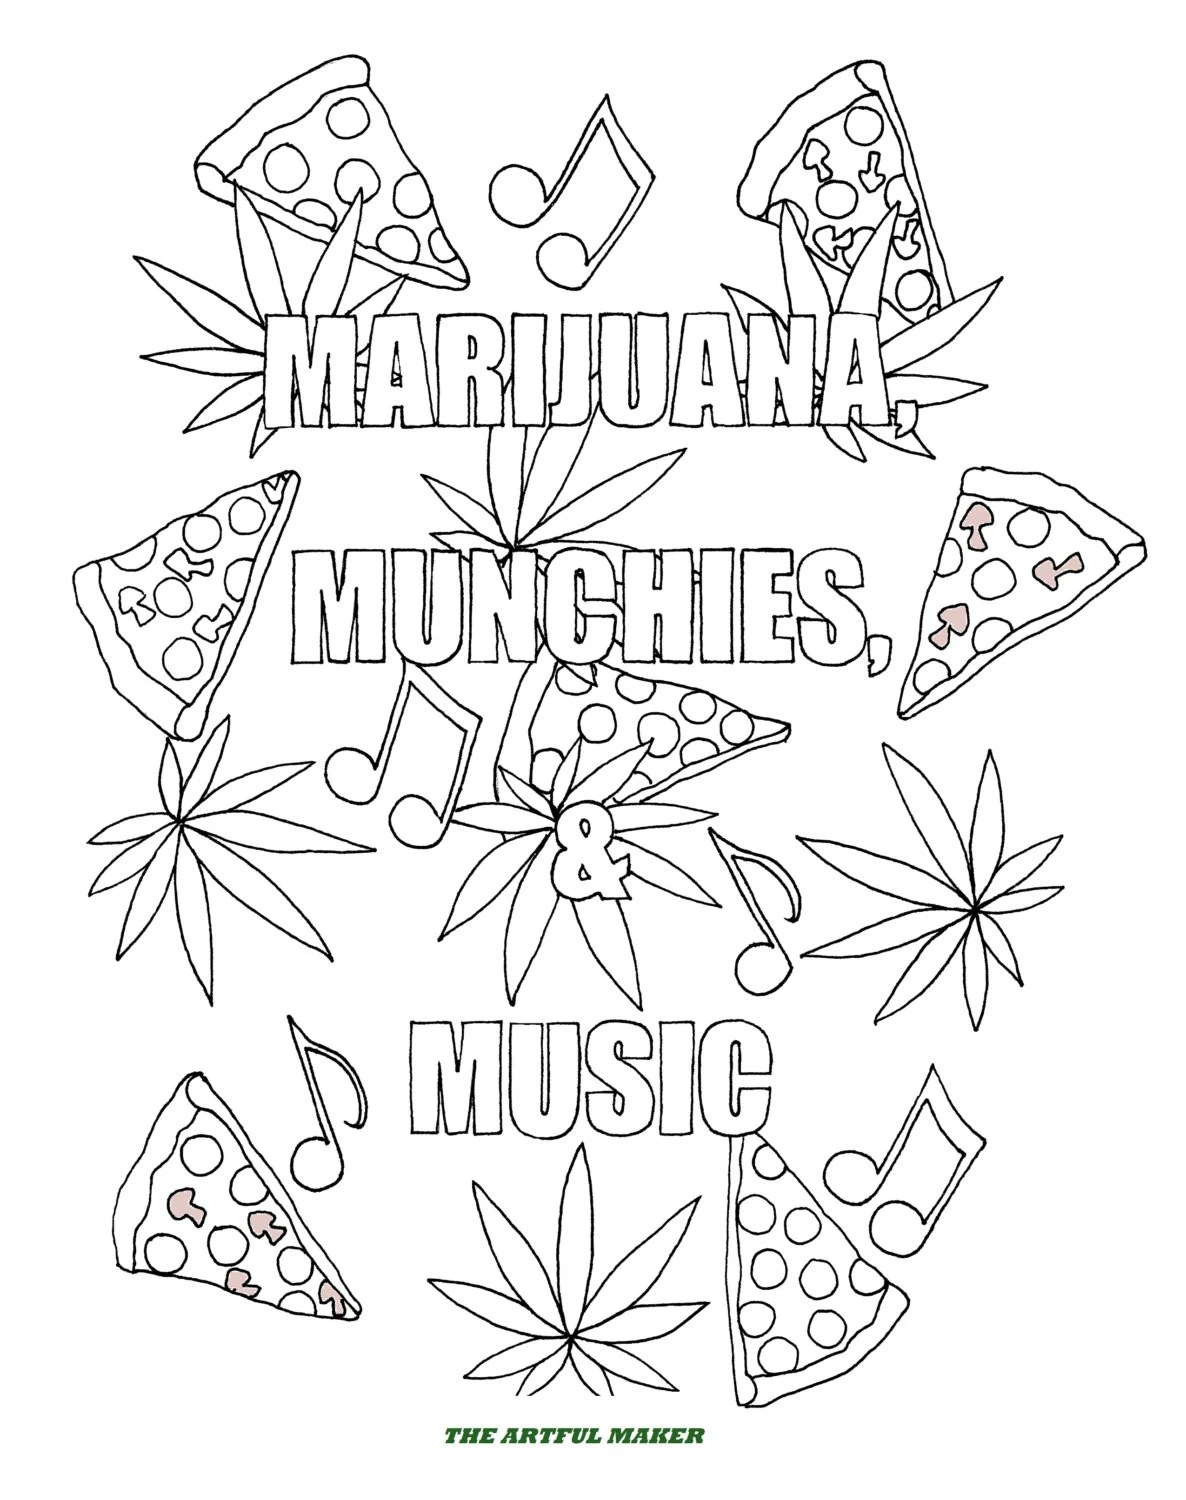 Marijuana Munchies & Music Adult Coloring Pages by The